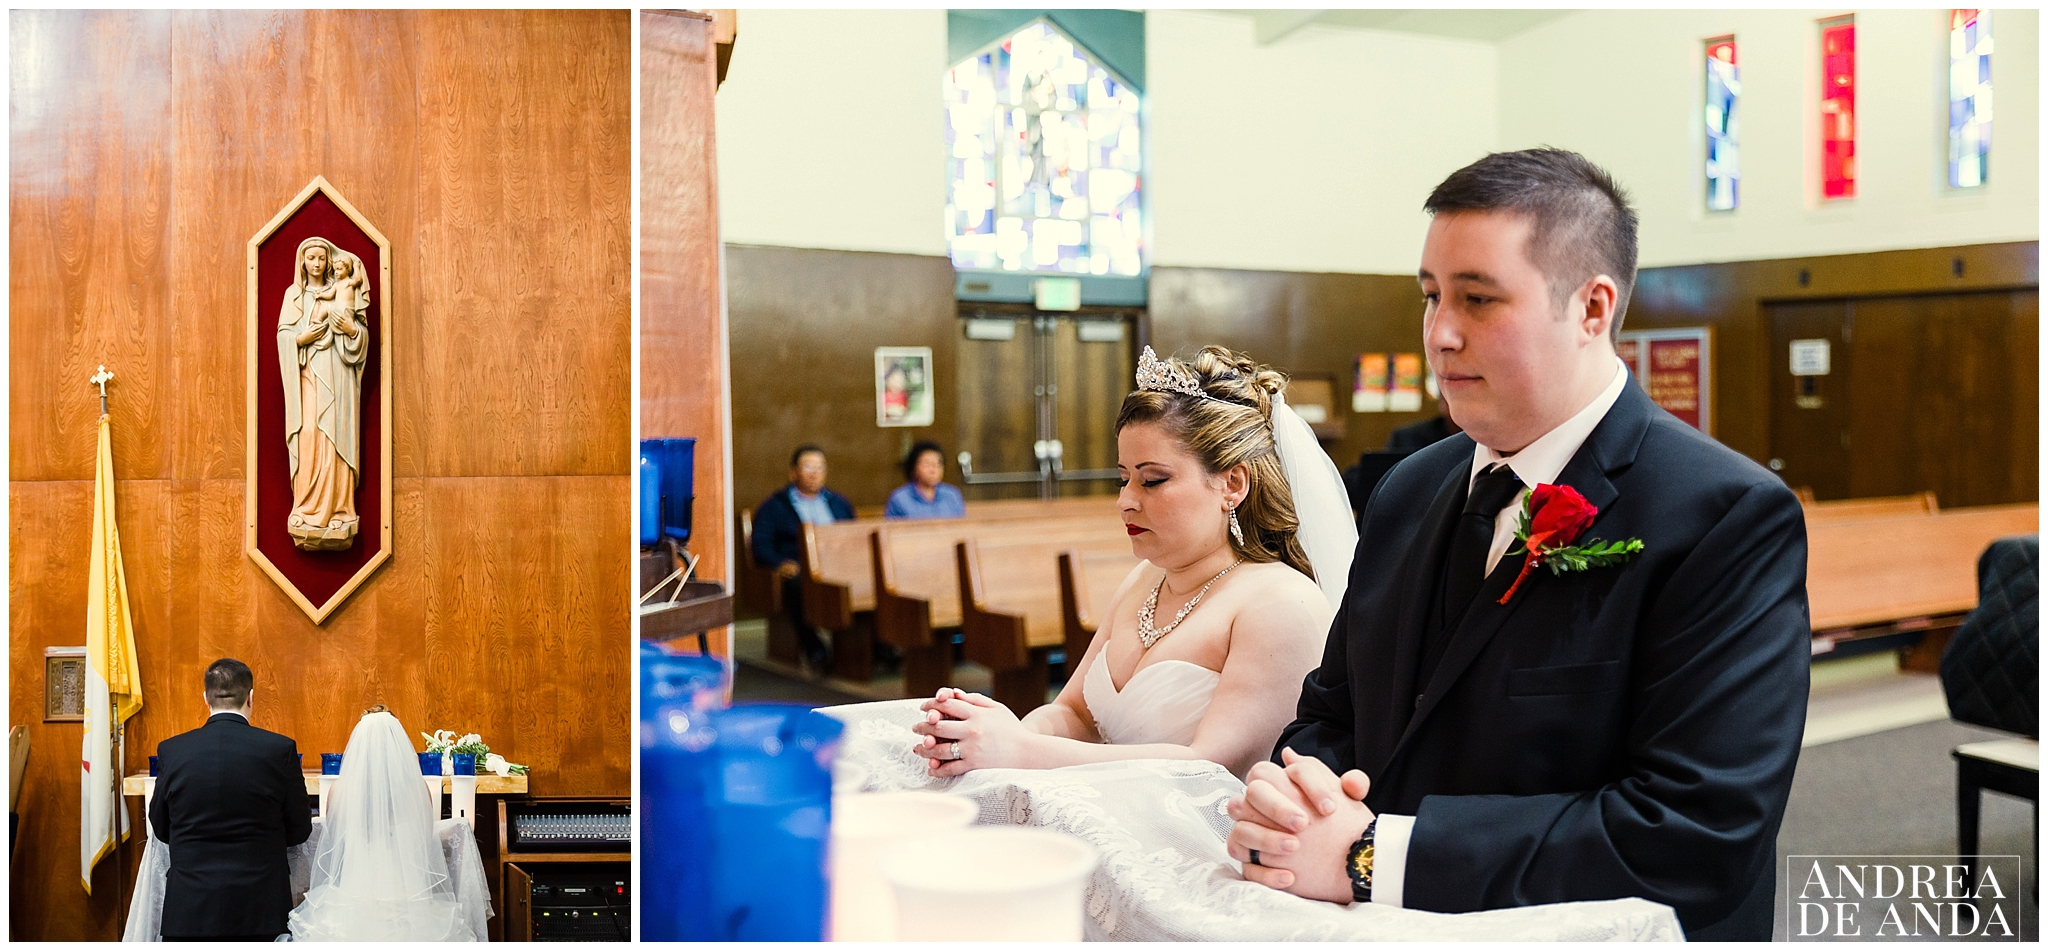 Santa Maria Wedding Photographer_ Andrea de Anda Photography__0016.jpg